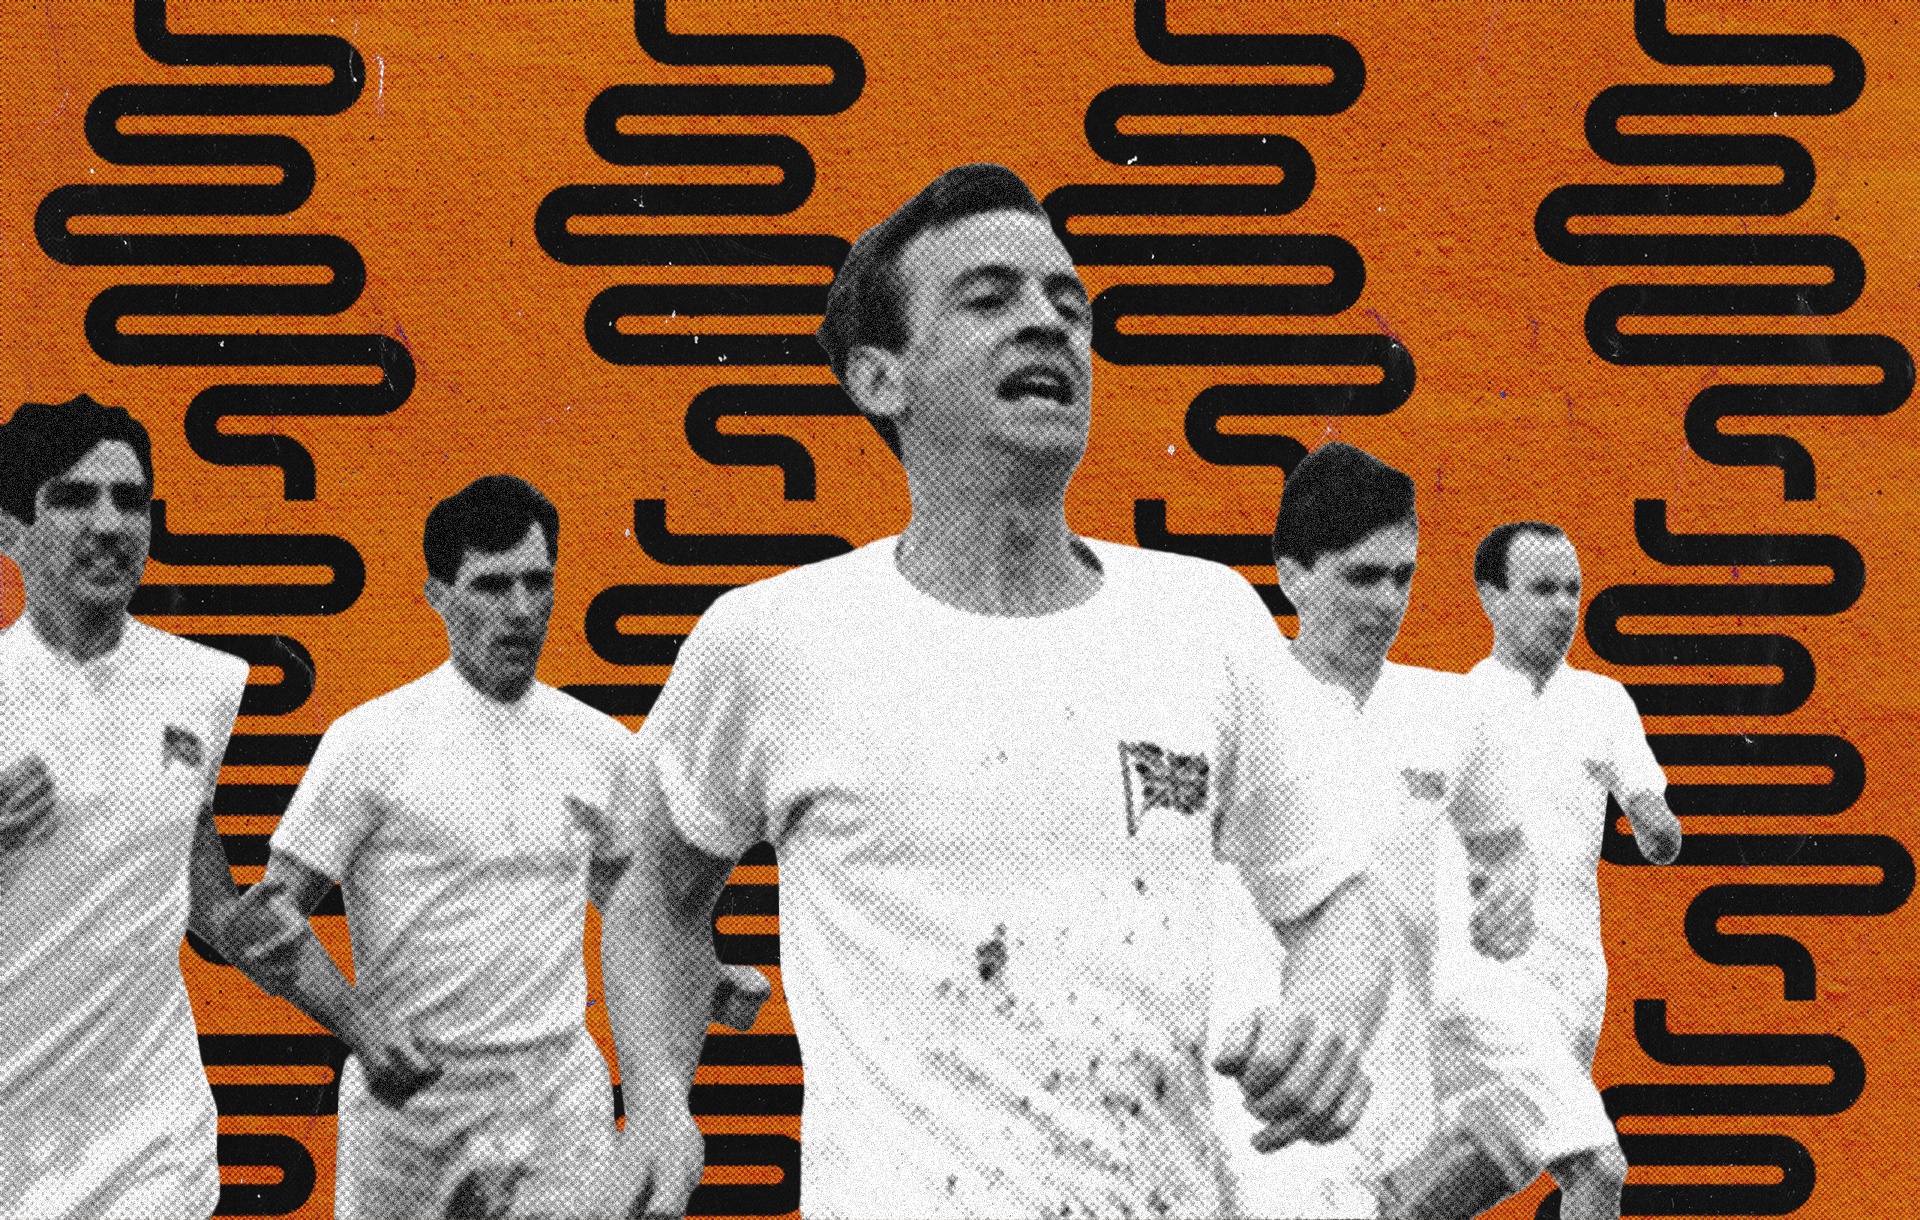 40 Years Later: 'Chariots Of Fire' Was More Than Just An All-Time Great Theme Song | Features | LIVING LIFE FEARLESS